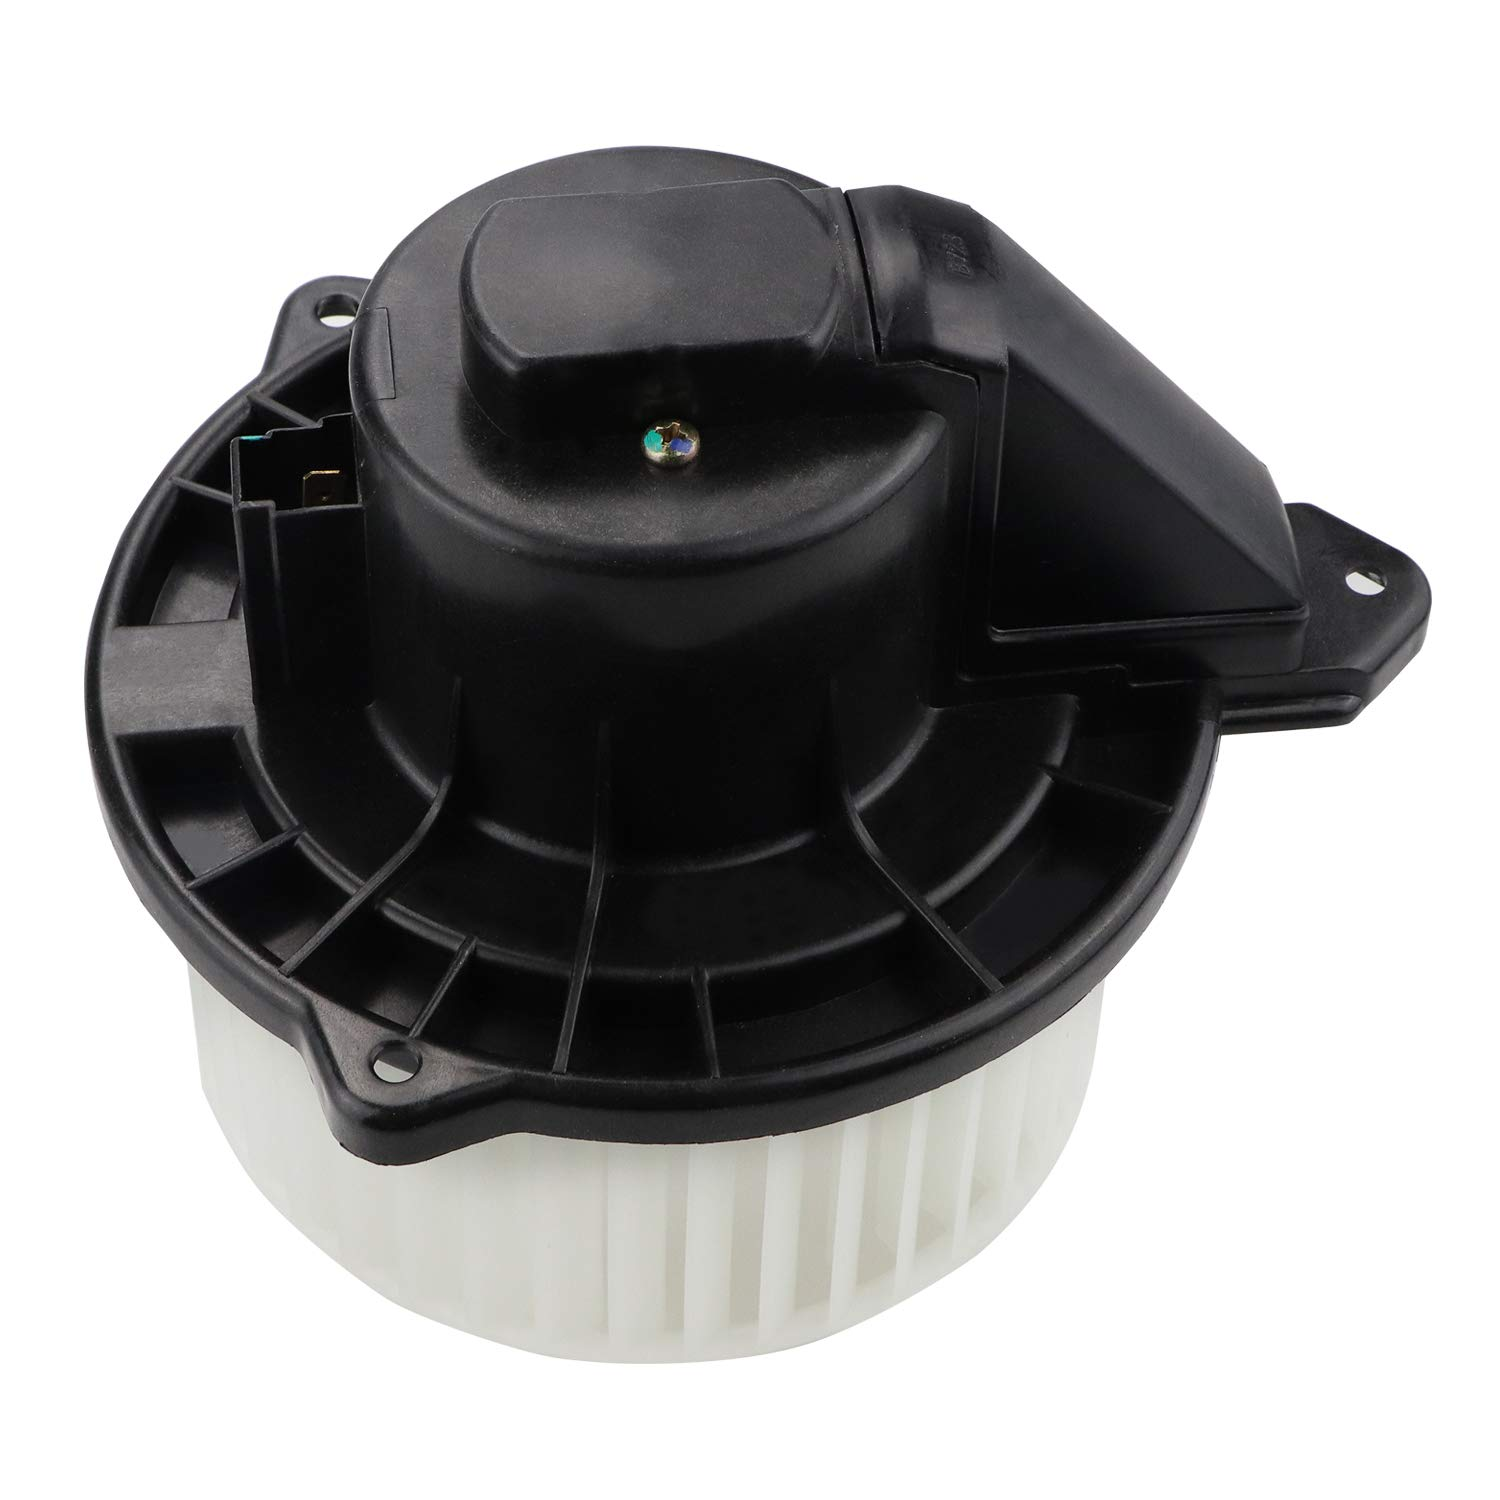 2002-2004 Jeep Grand Cherokee 5012701AB 615-00649 615-00635 615-0629 5096255AA 5096256AA Replacement Heater Blower Motor with Fan For 2002-2008 Dodge Ram 1500 2500 3500